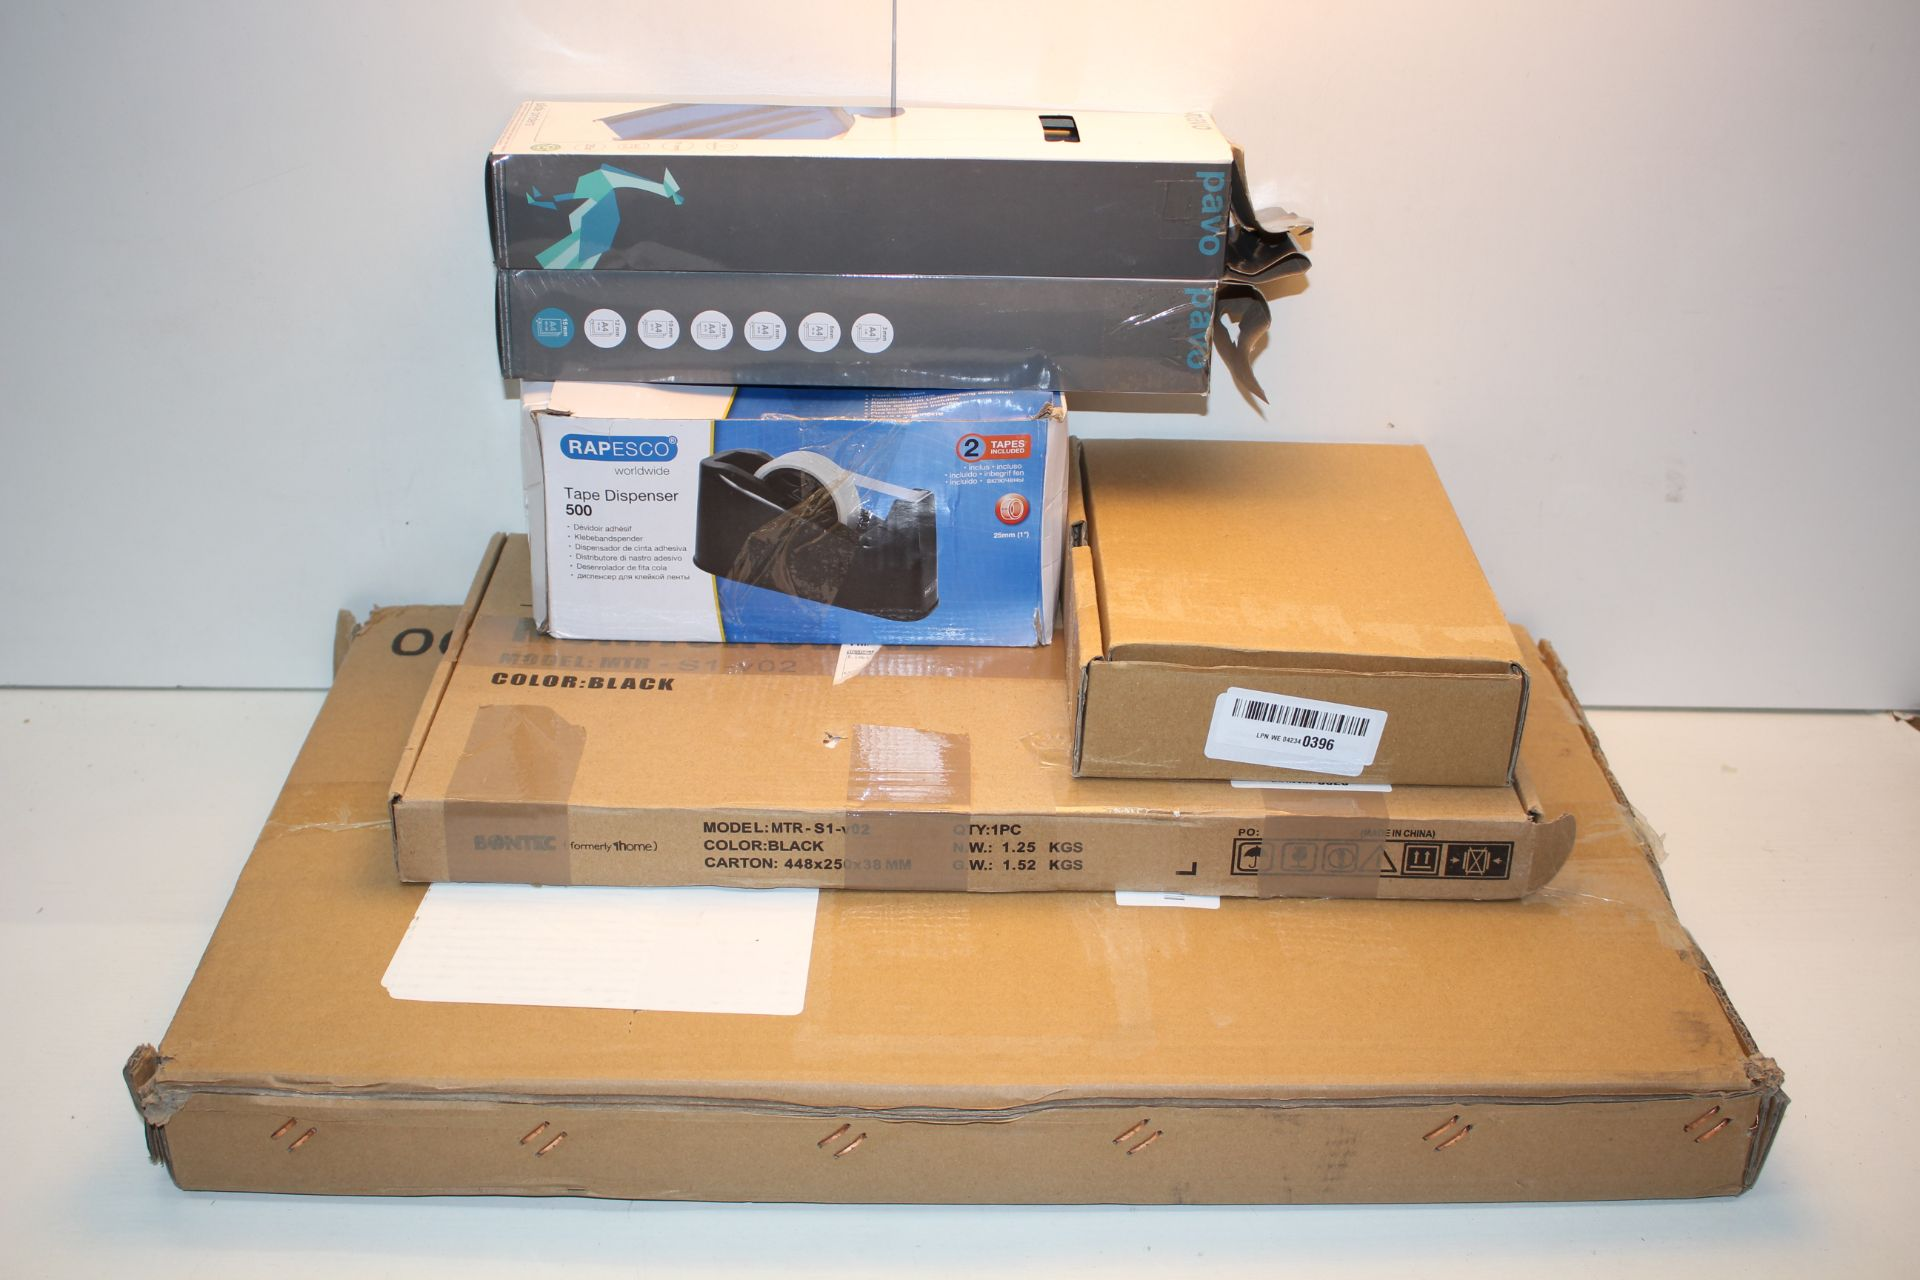 6X BOXED ASSORTED ITEMS TO INCLUDE TAPE DISPENSER, MONITOR STAND & OTHER Condition ReportAppraisal